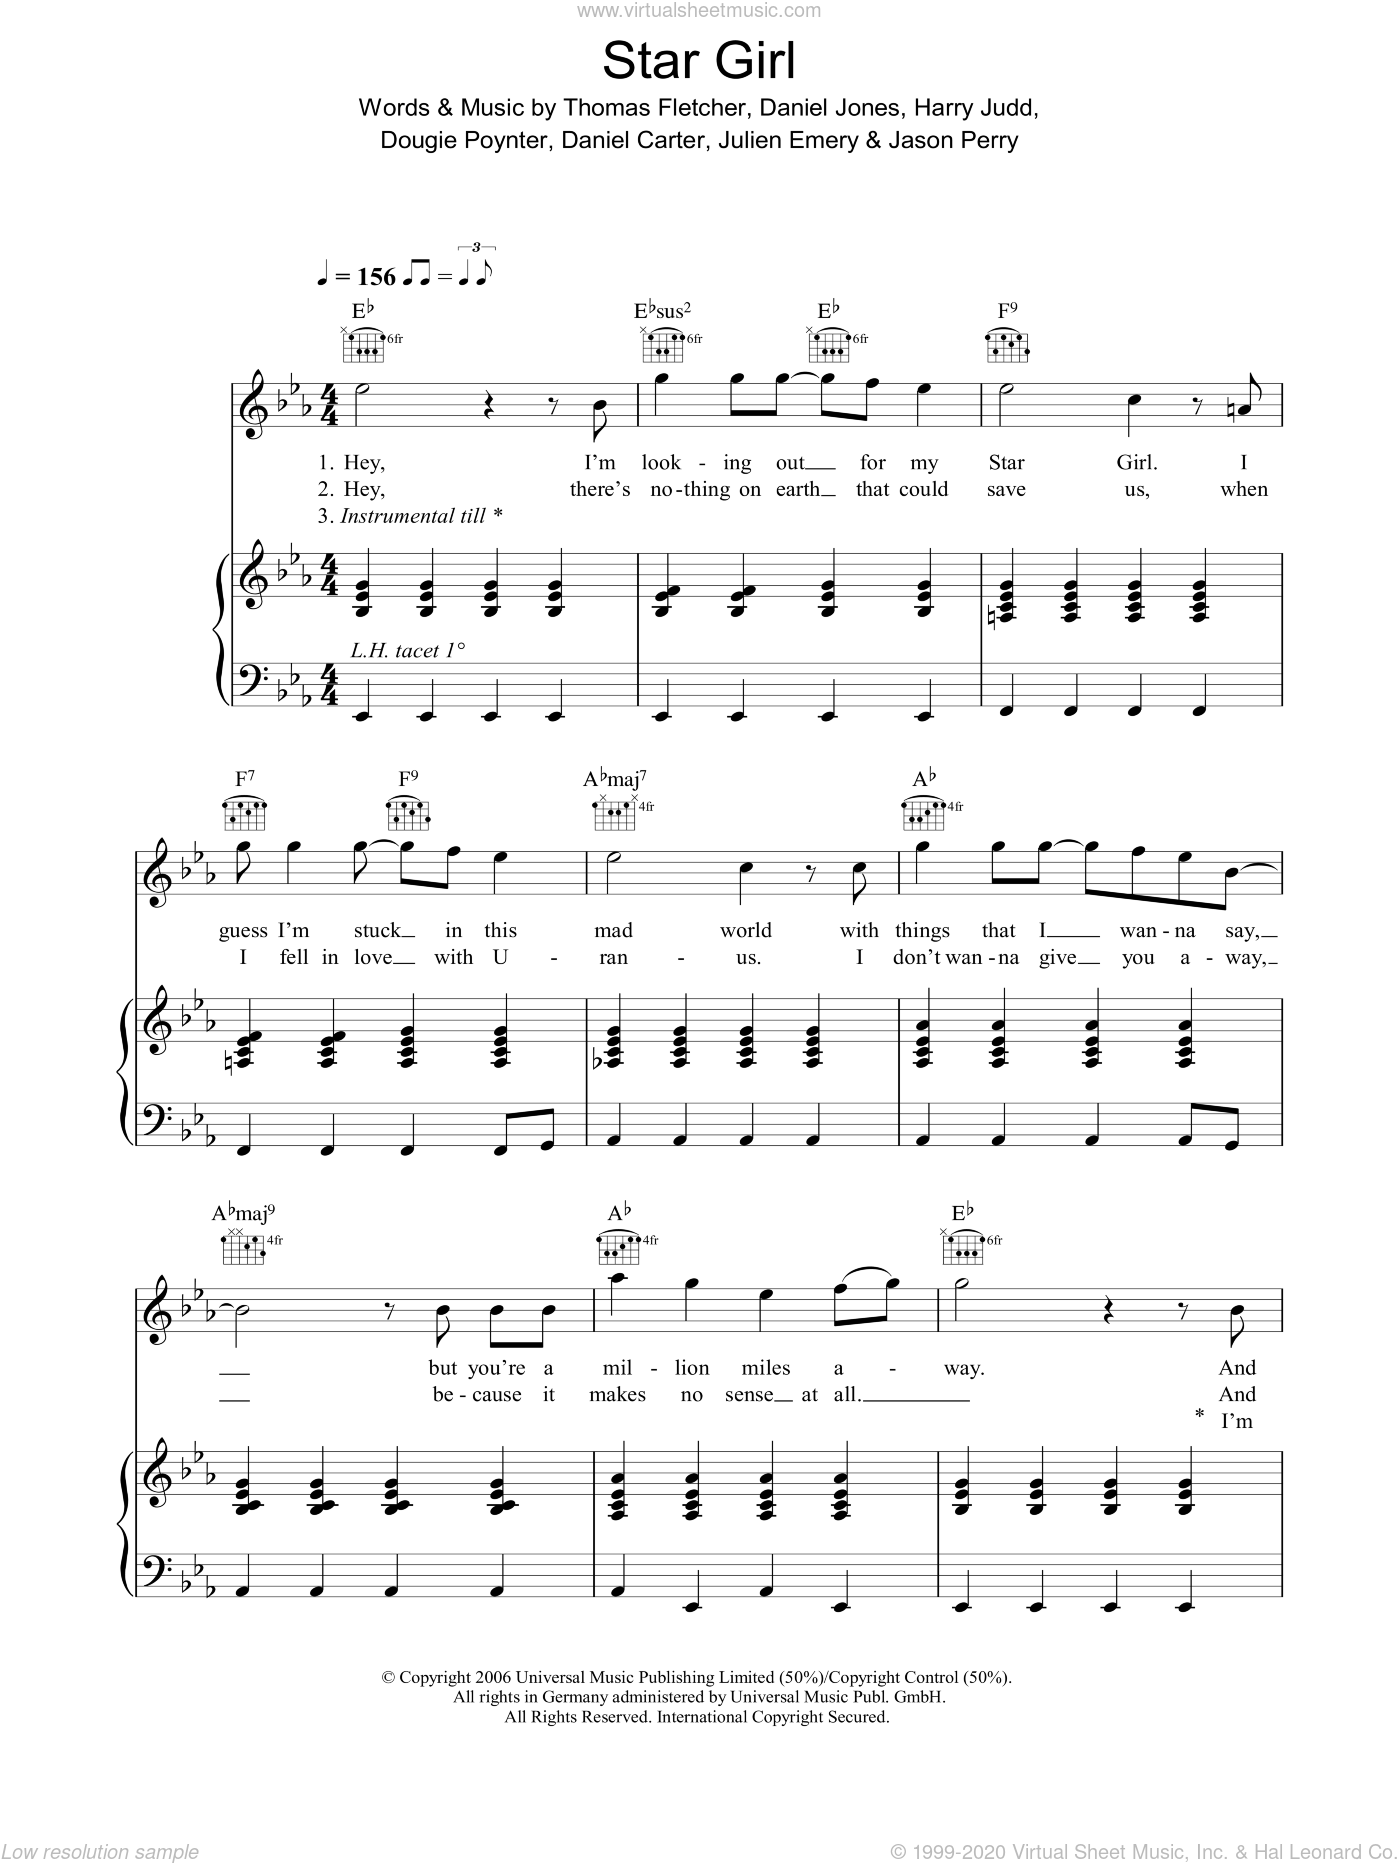 Star Girl sheet music for voice, piano or guitar by Thomas Fletcher, Daniel Carter, Danny Jones, Dougie Poynter and Jason Perry. Score Image Preview.